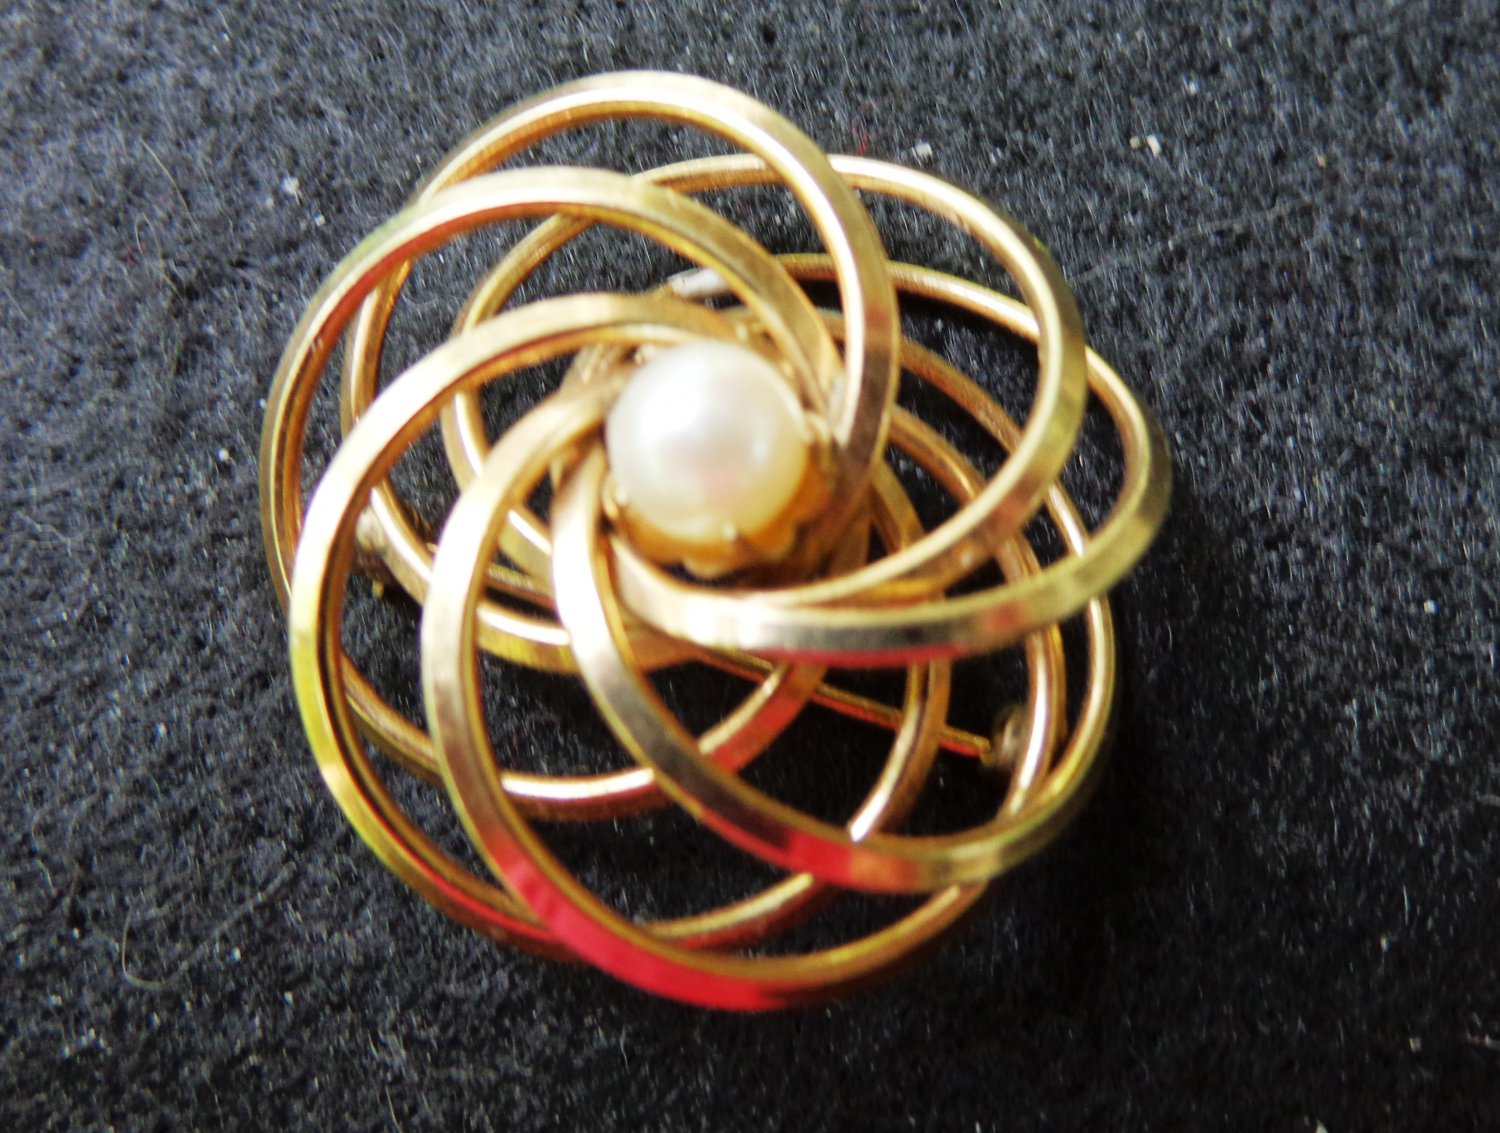 Gold filled w cultured pearl swirled circles brooch pin 1/20 12k gf signed HG vintage ll3333